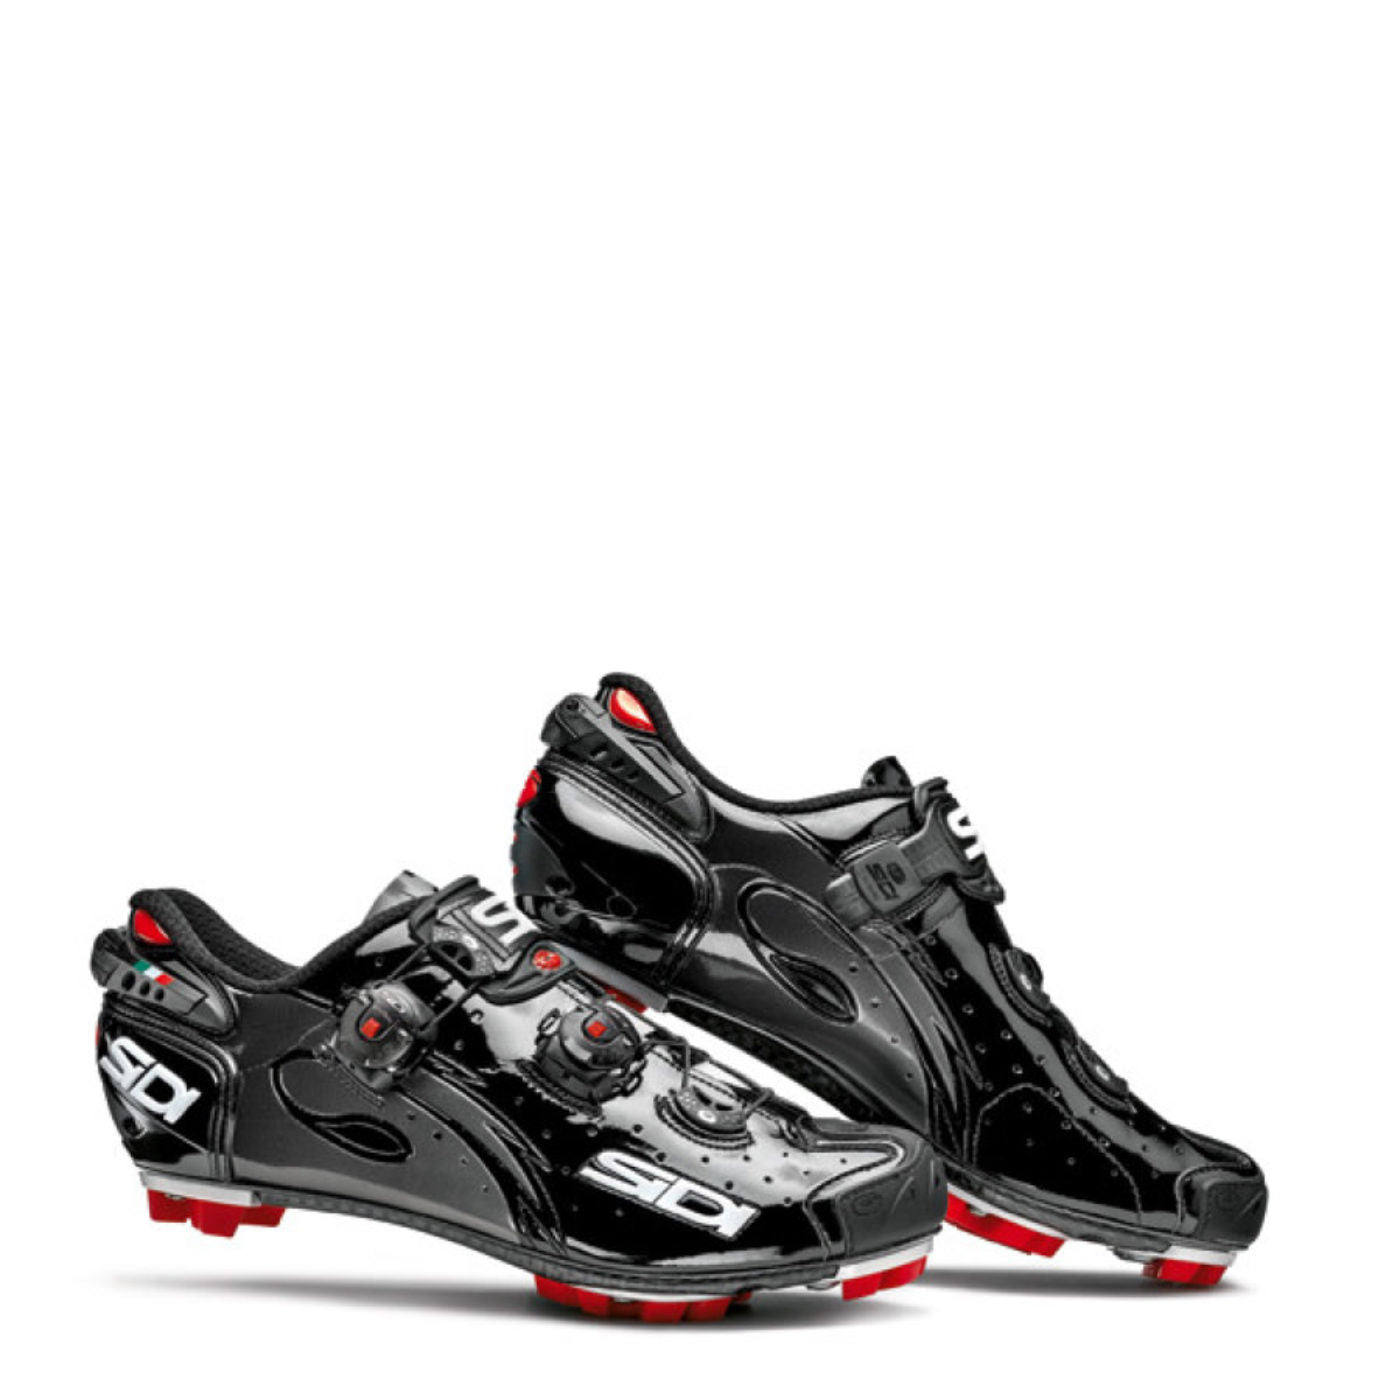 Sidi T Shoes For Sale